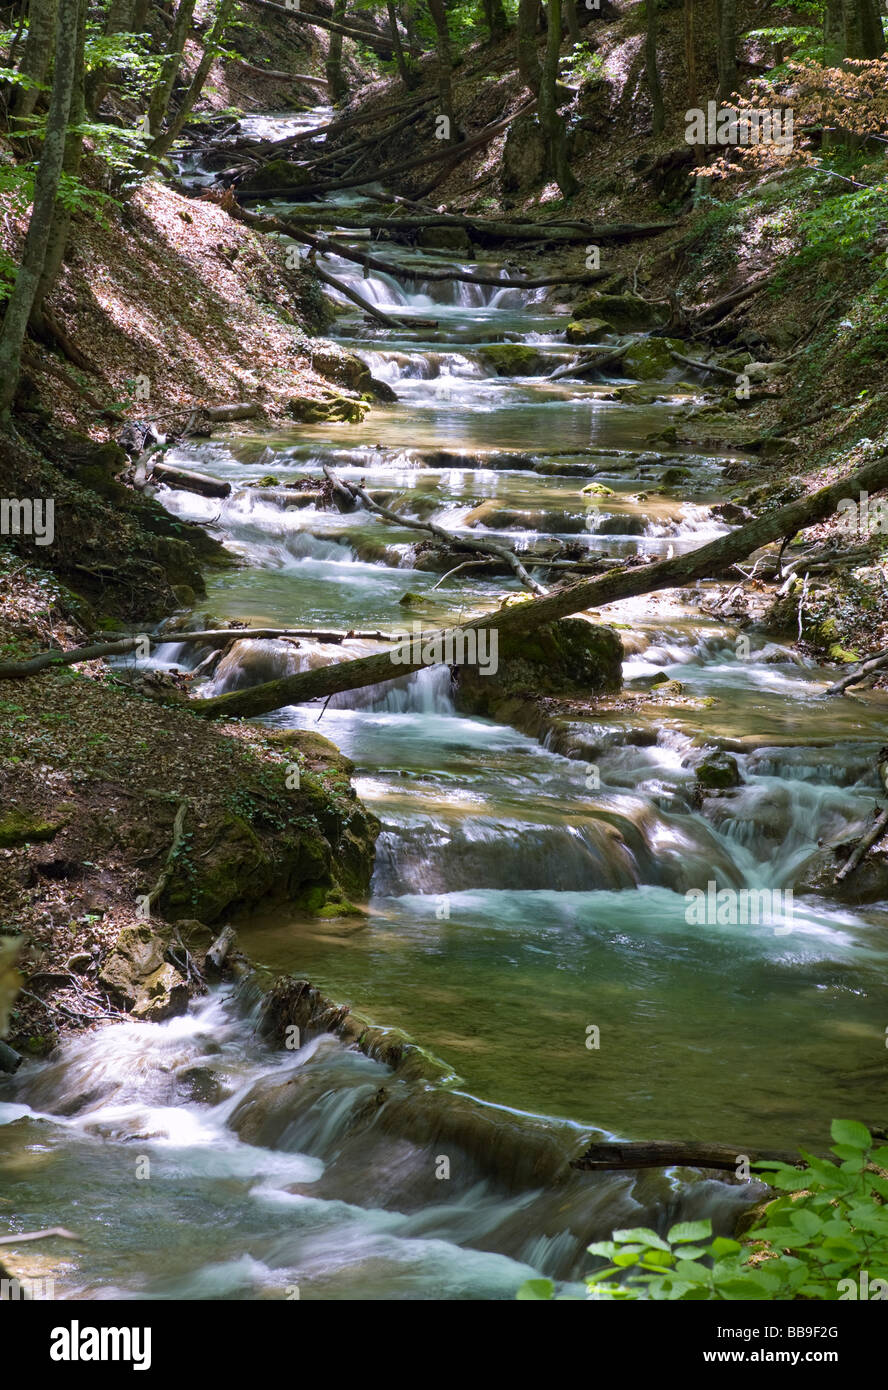 Ripples and cascades on spring mountain river in dark forest. Long term exposure. - Stock Image